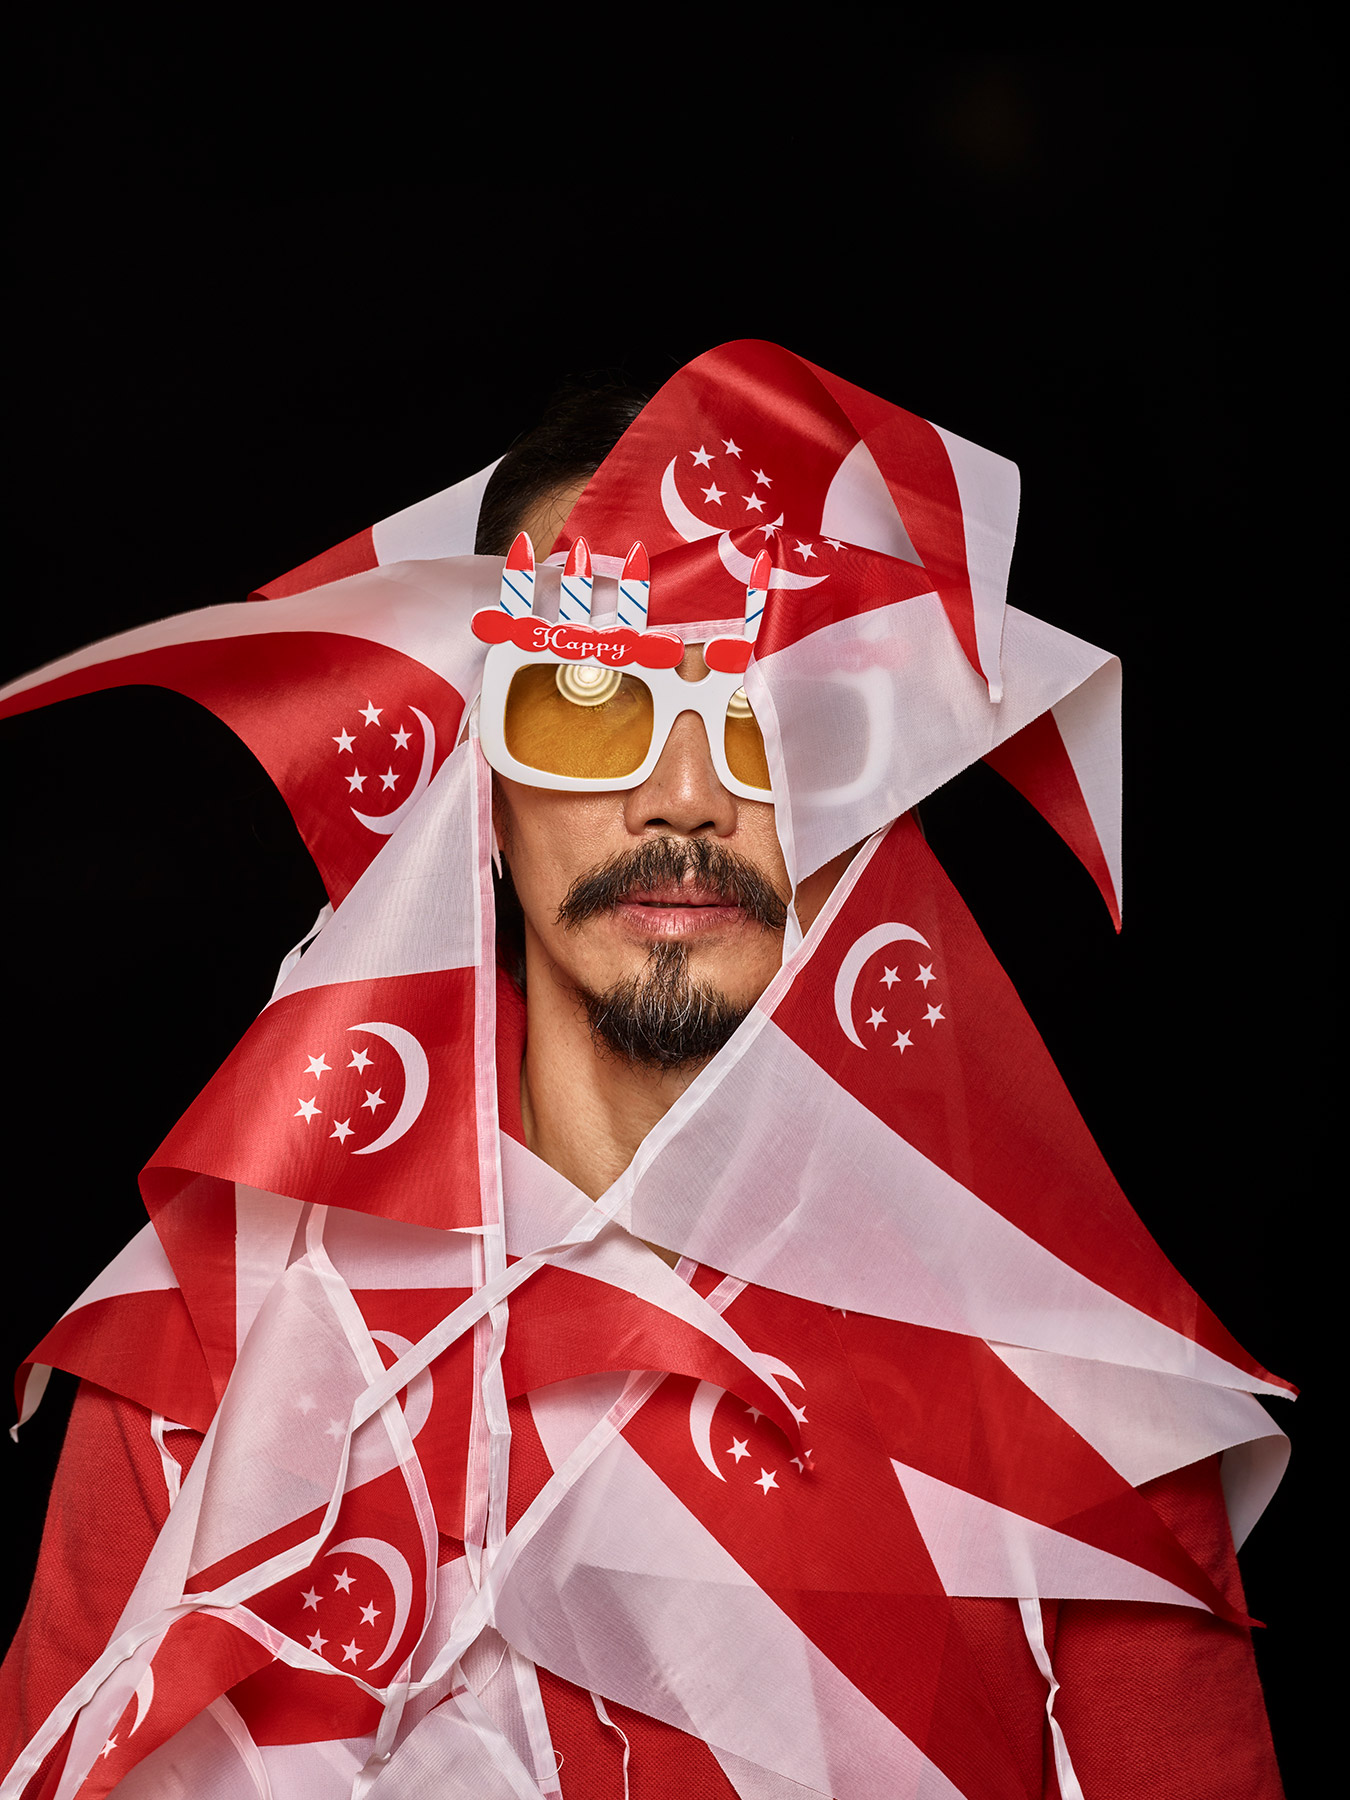 9 Aug 2017 Derong is wearing party shades and has a string of Singapore flags all over him